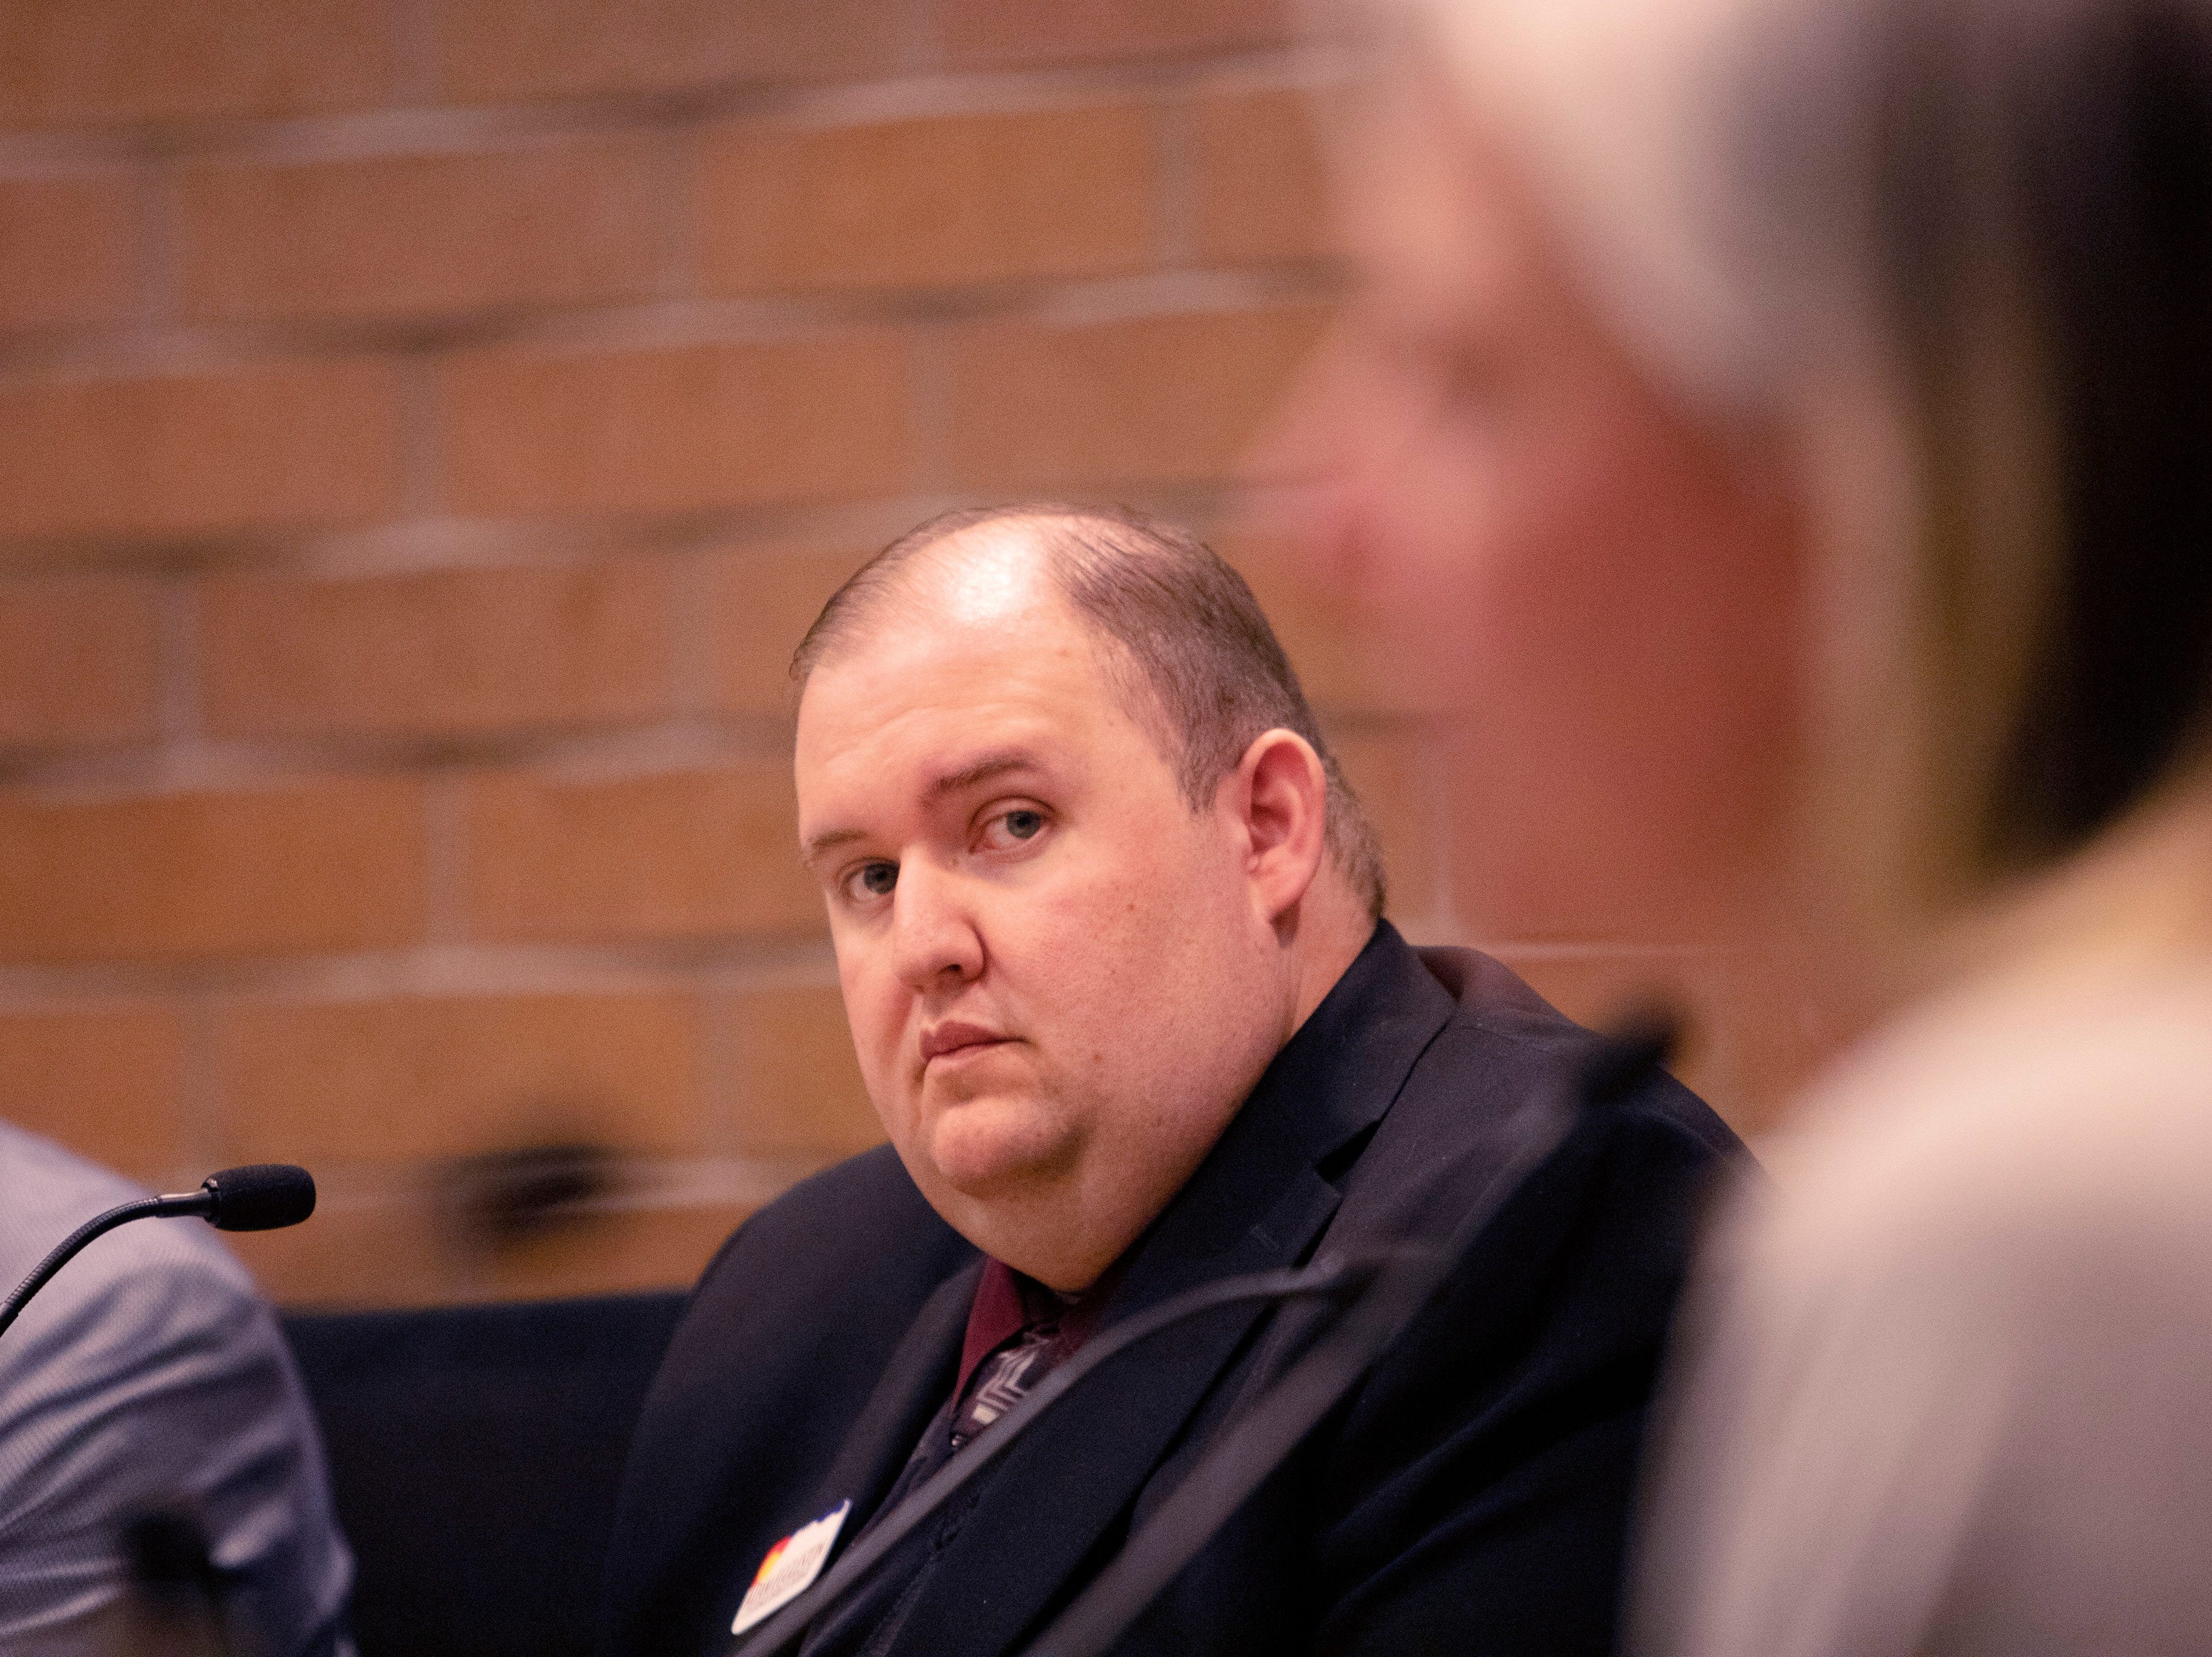 City Council candidate Adam Eggelston participates in the candidate forum hosted by The League of  Women Voters of Larimer County at City Hall on March 6.